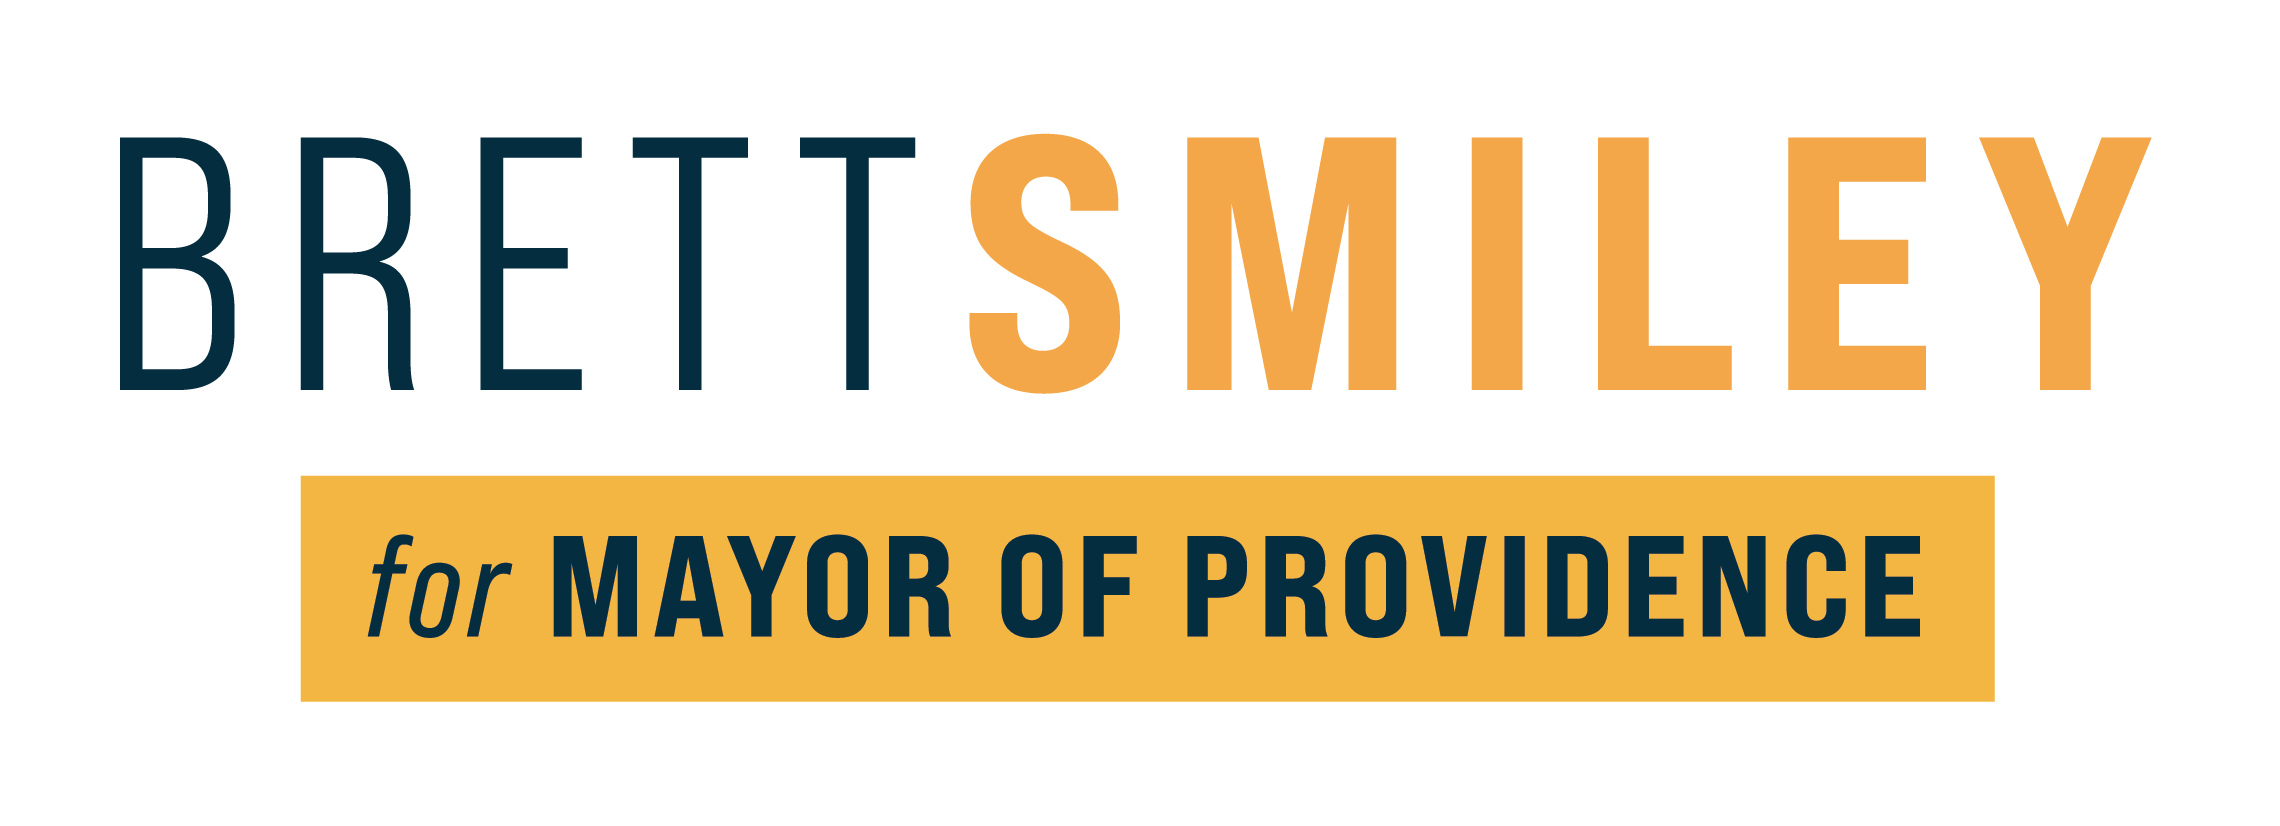 Brett Smiley for Mayor